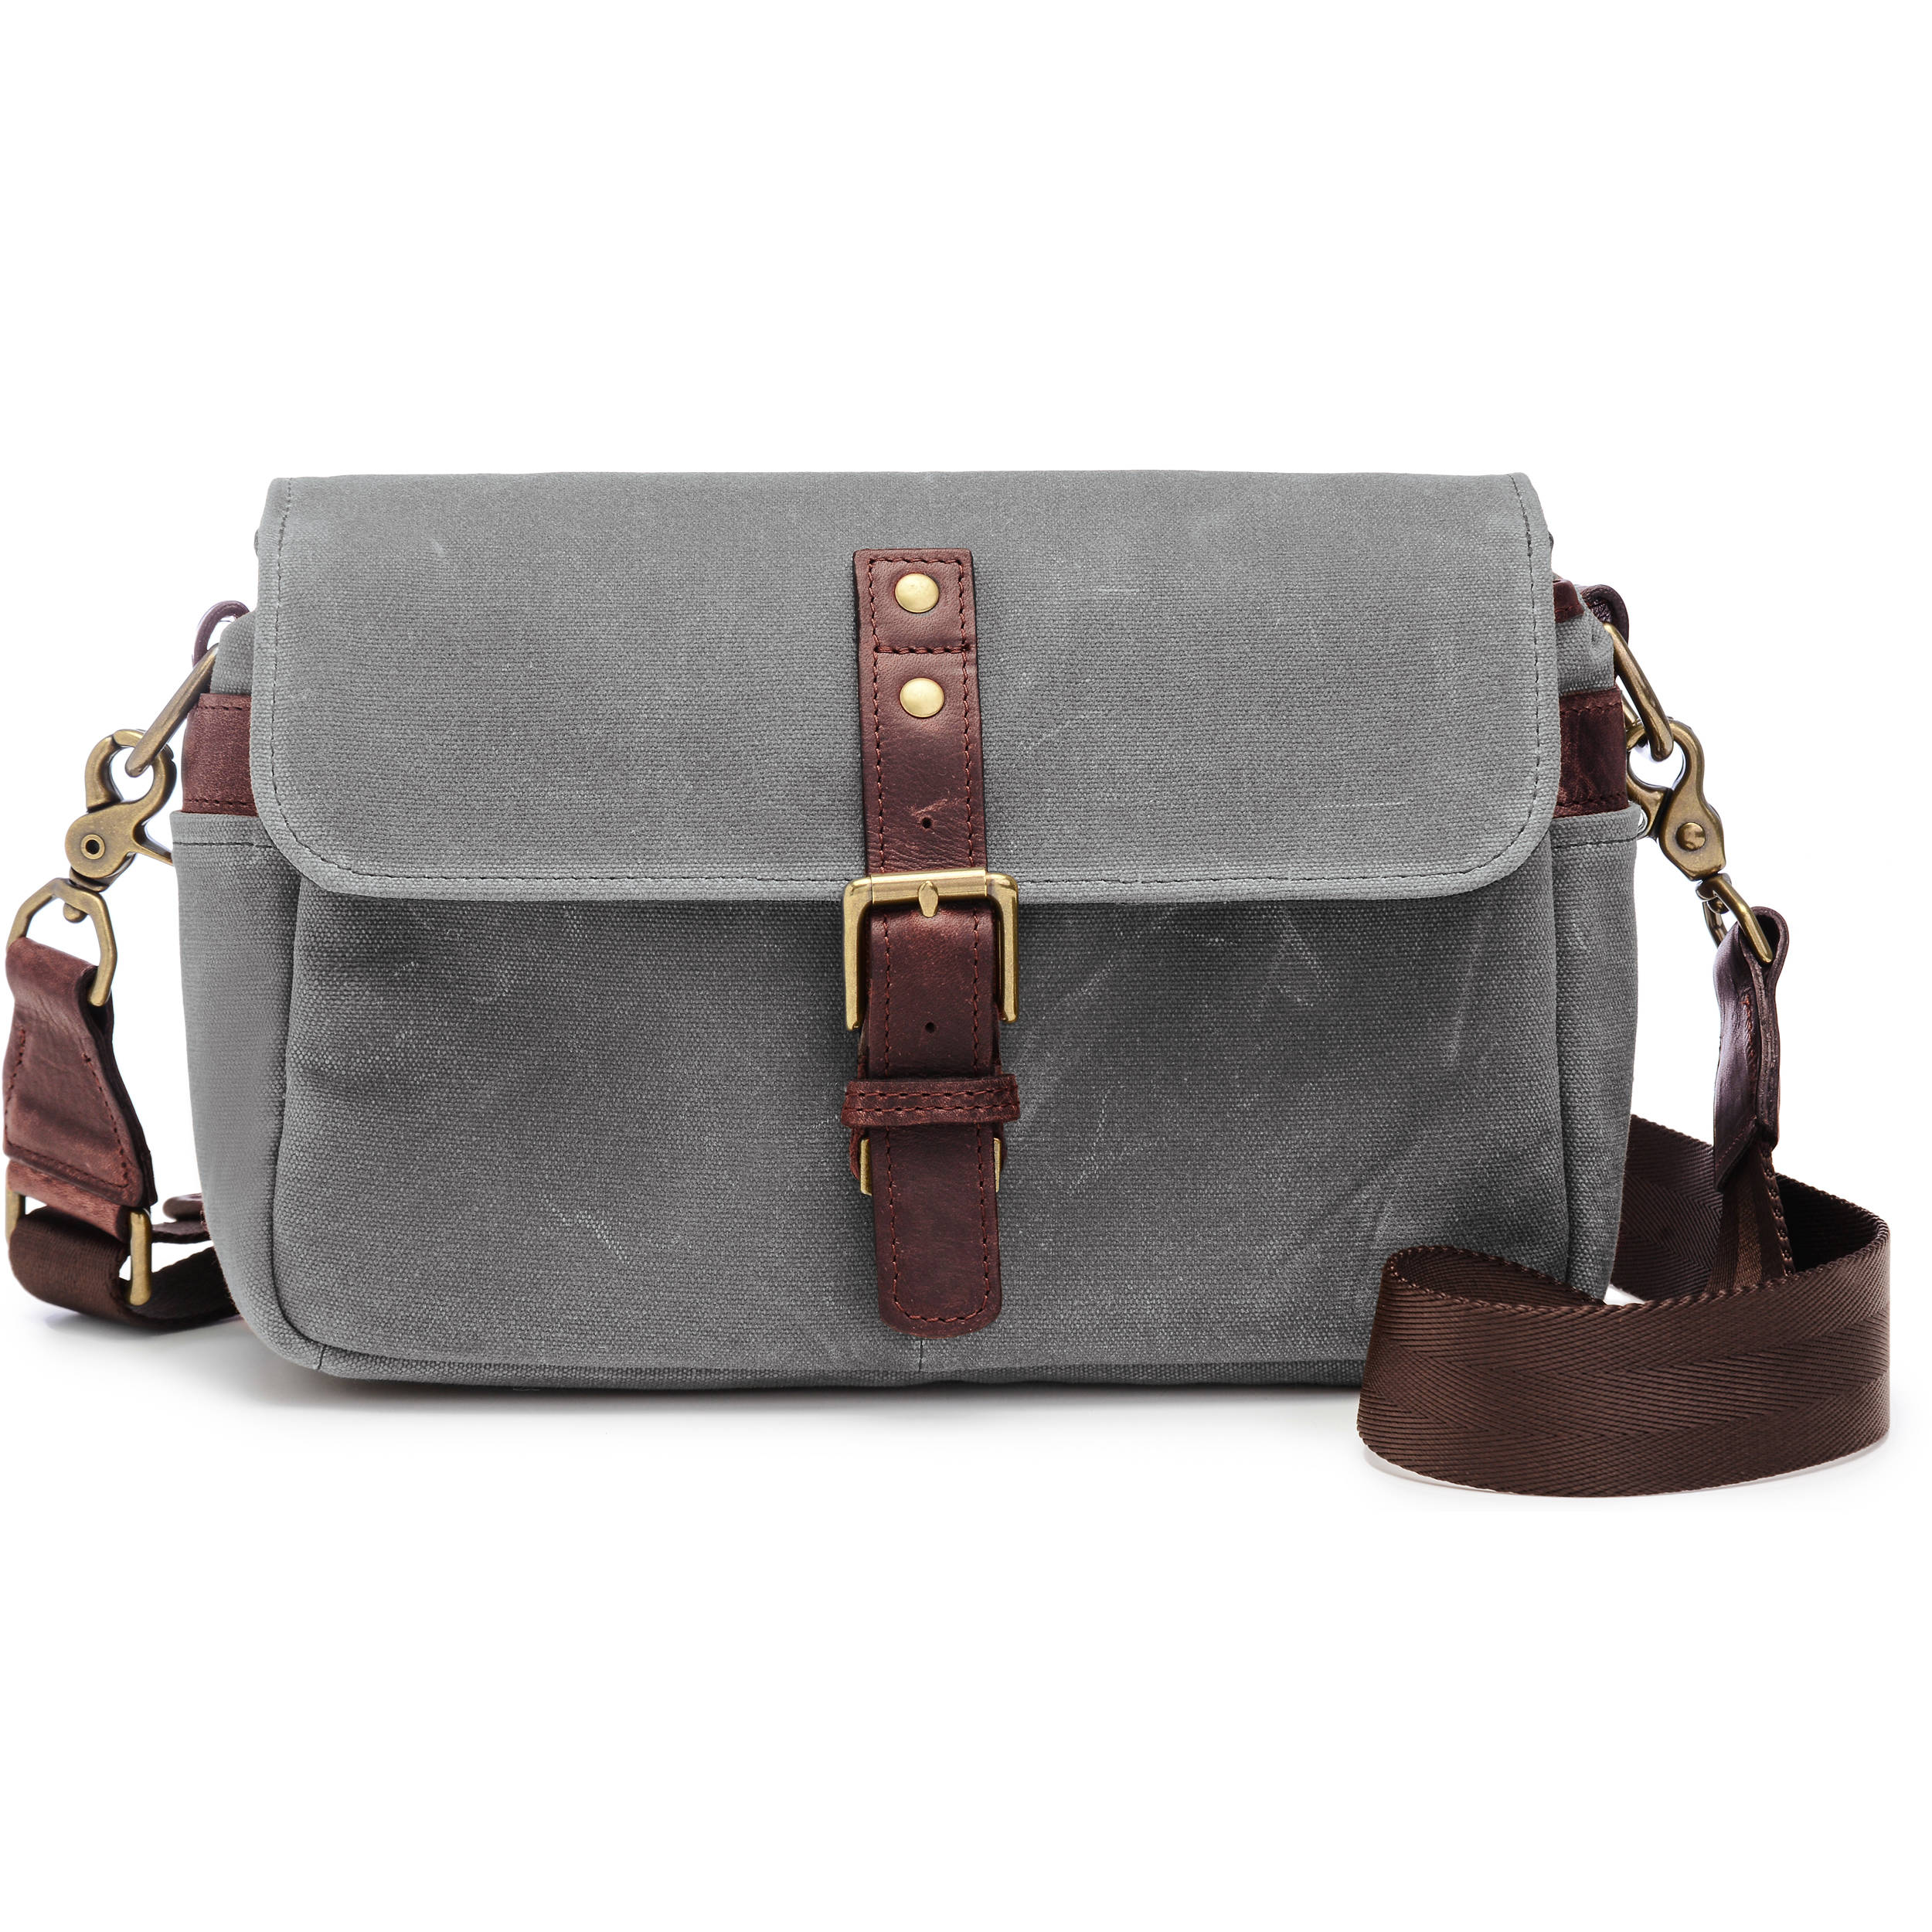 ONA Bowery Camera Bag (Canvas, Smoke) ONA5-014GR B&H Photo Video